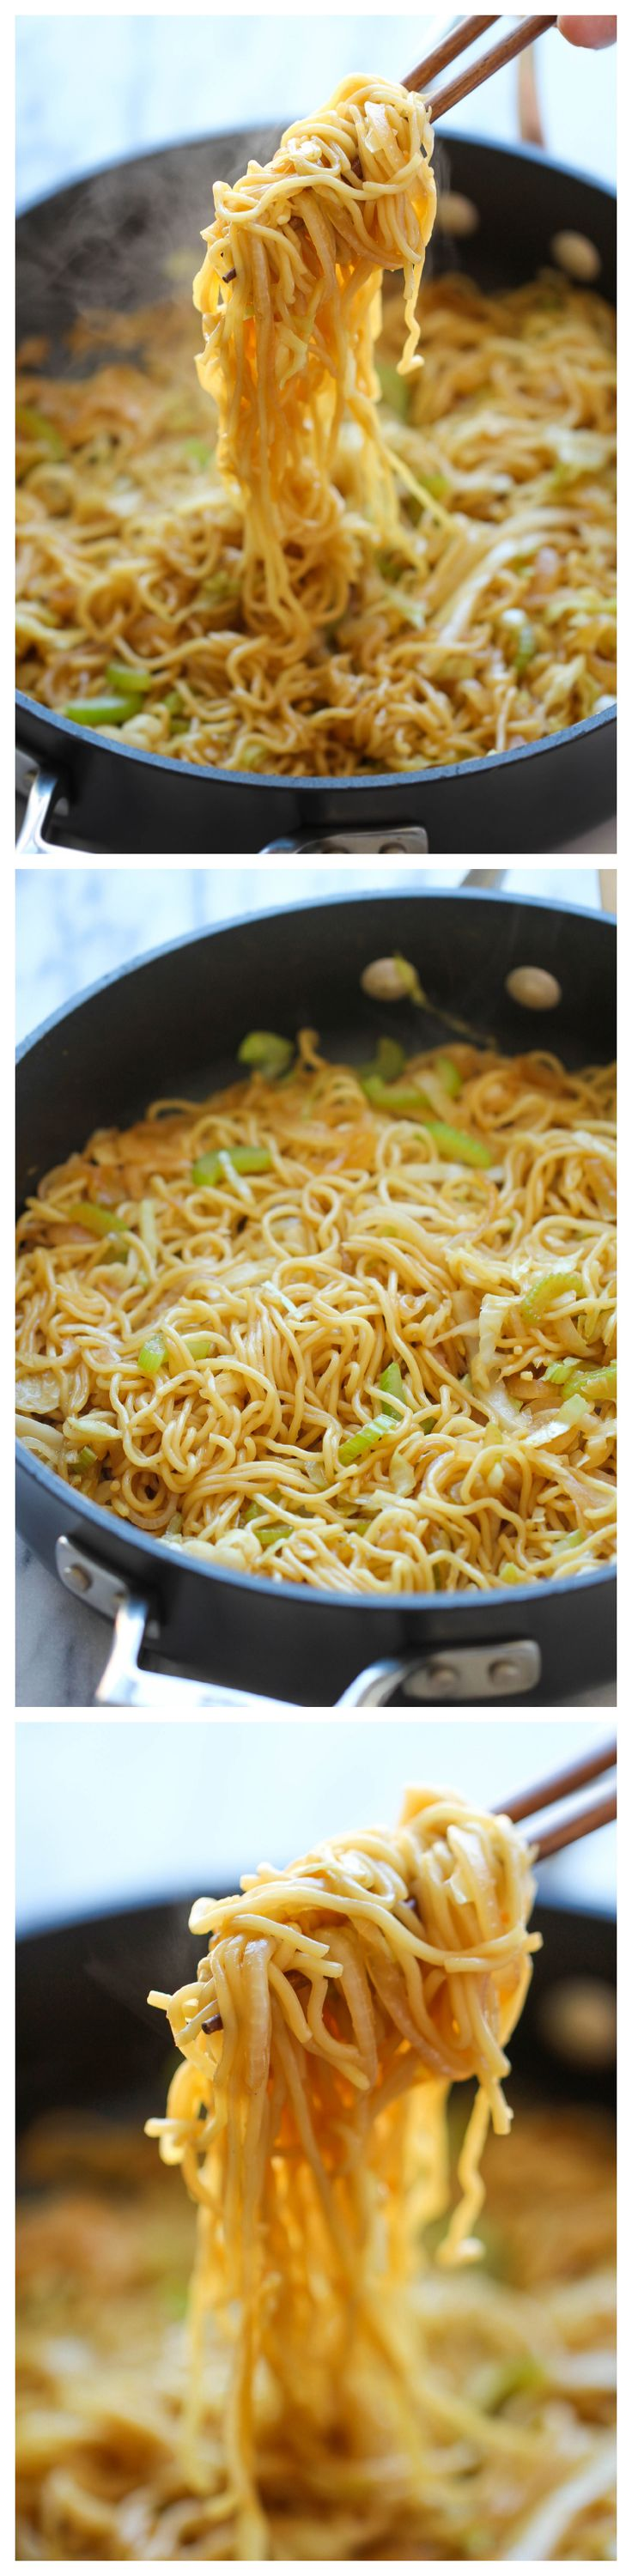 new cheap shoes for sale Panda Express Chow Mein Copycat | Recipe